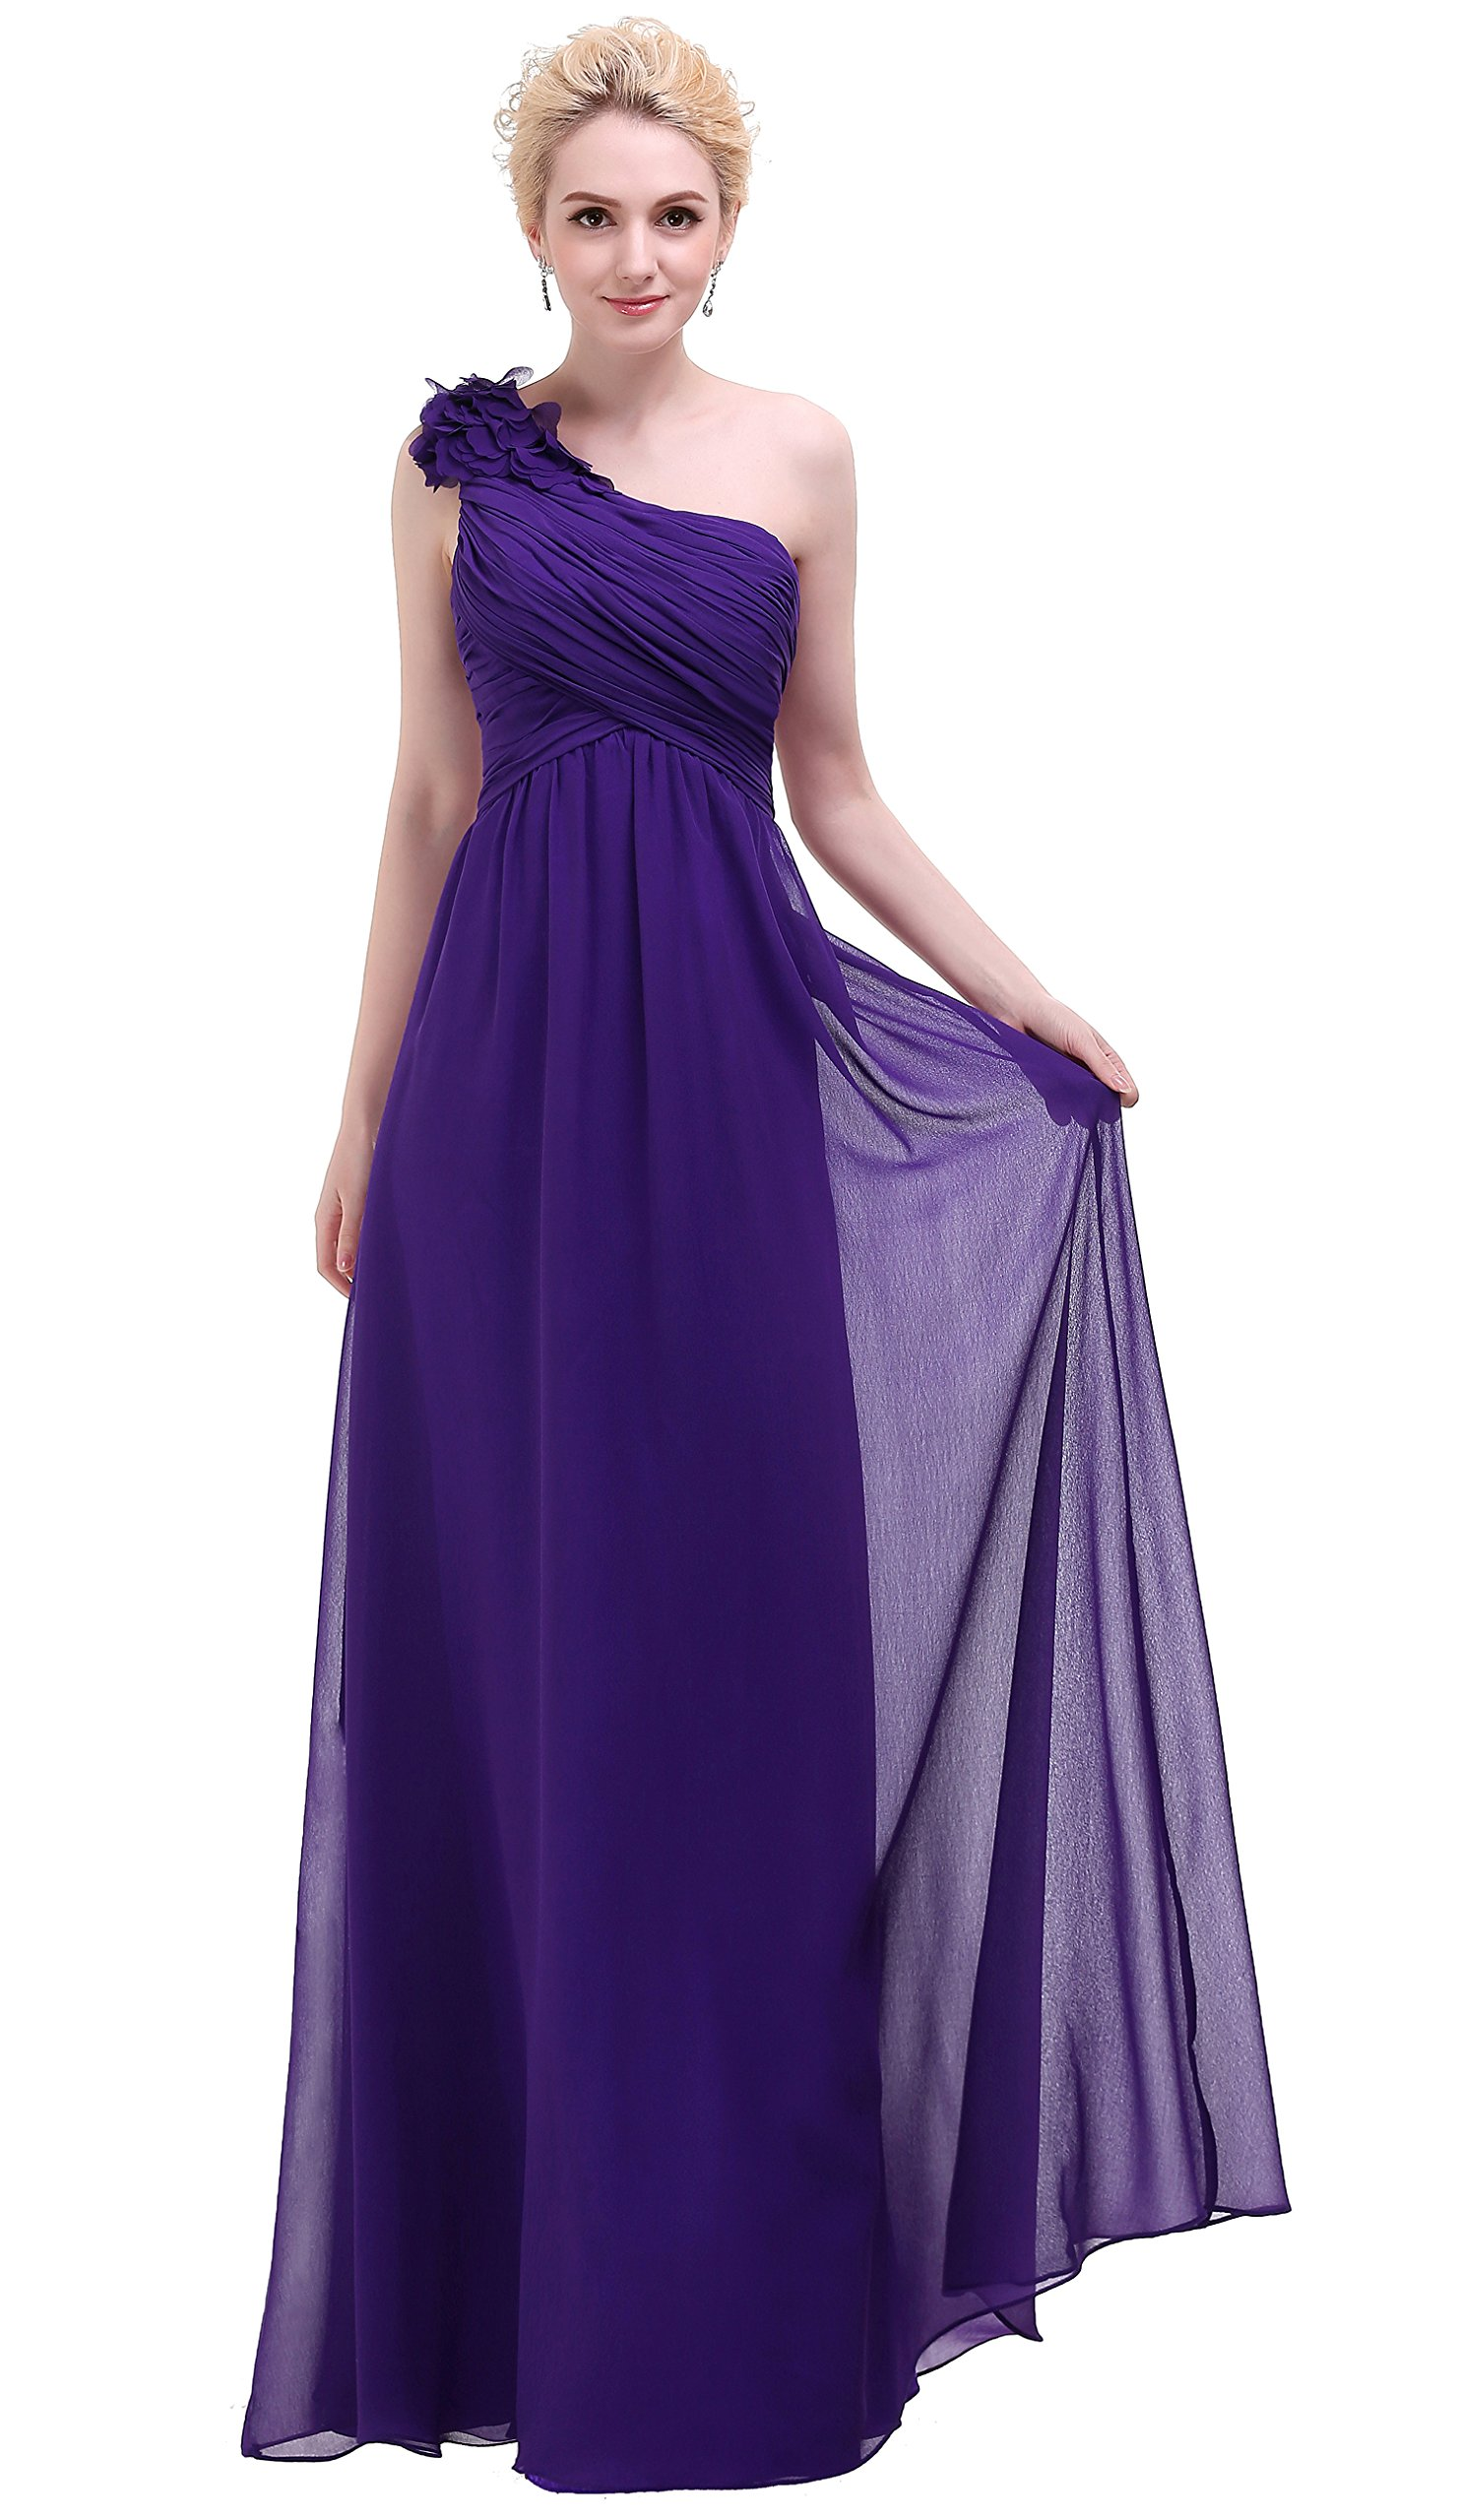 Dark Purple Long Prom Dresses: Amazon.com